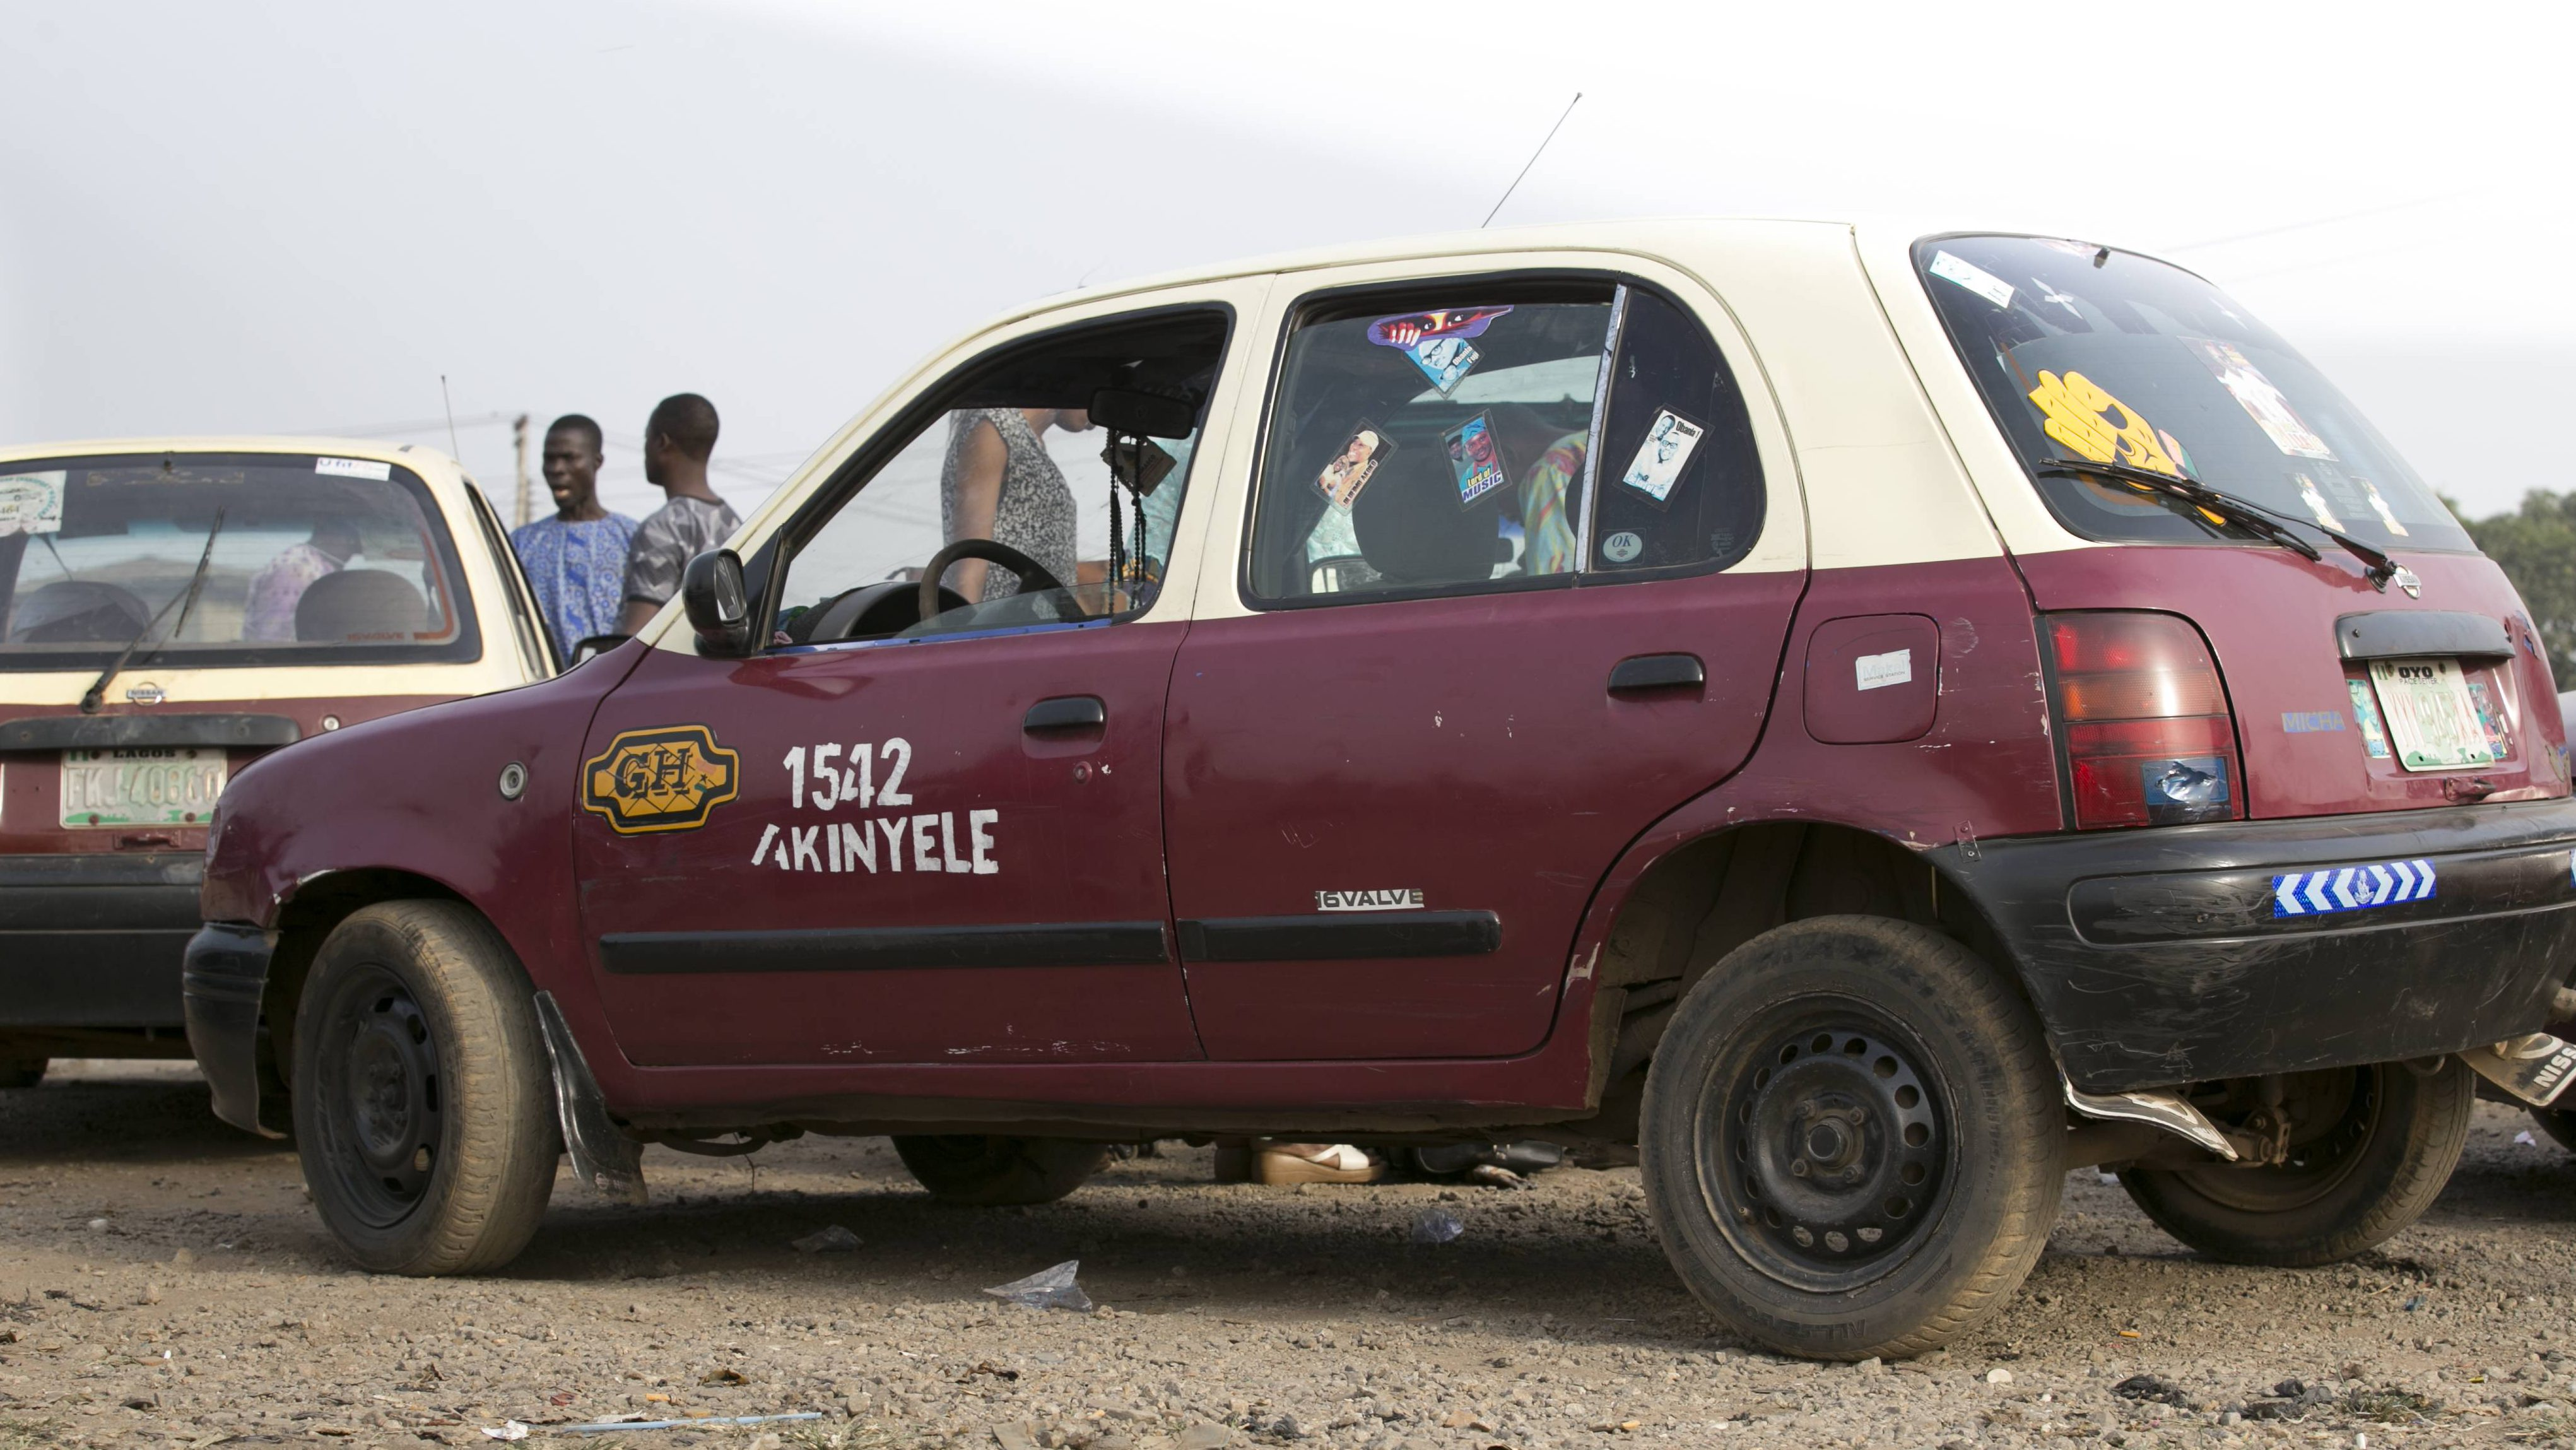 The Nissan Micra in local taxi colors in Ibadan